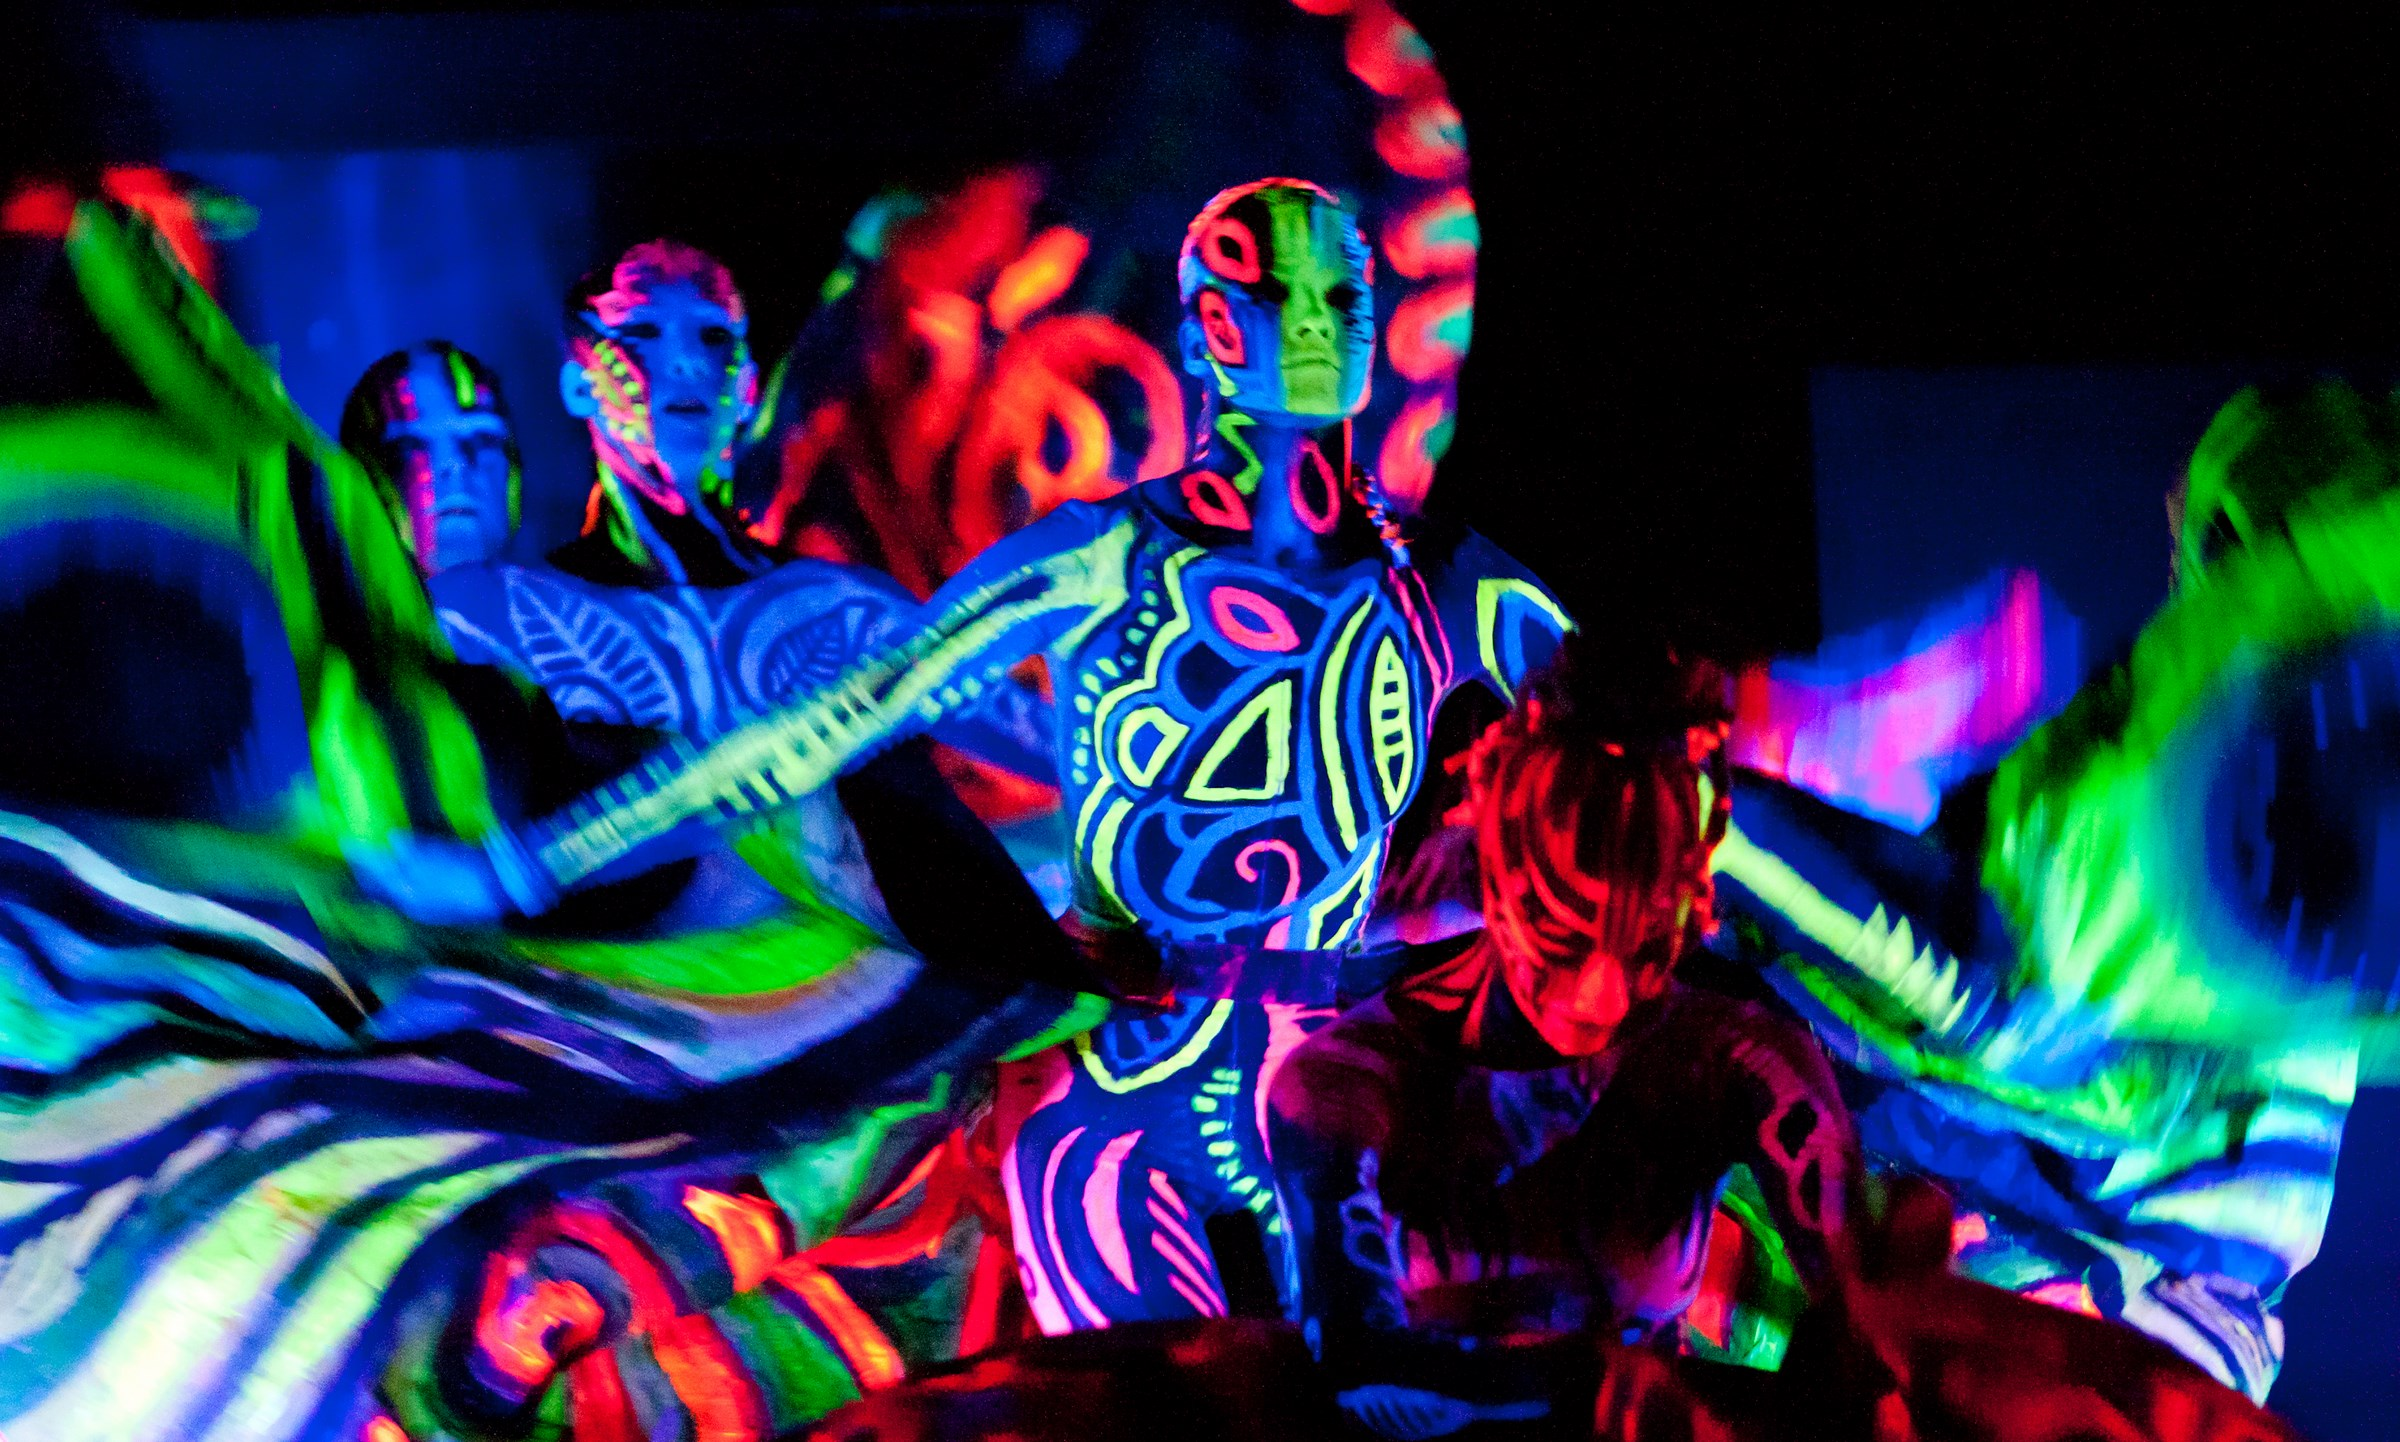 DMC Poland Fluo Dancers